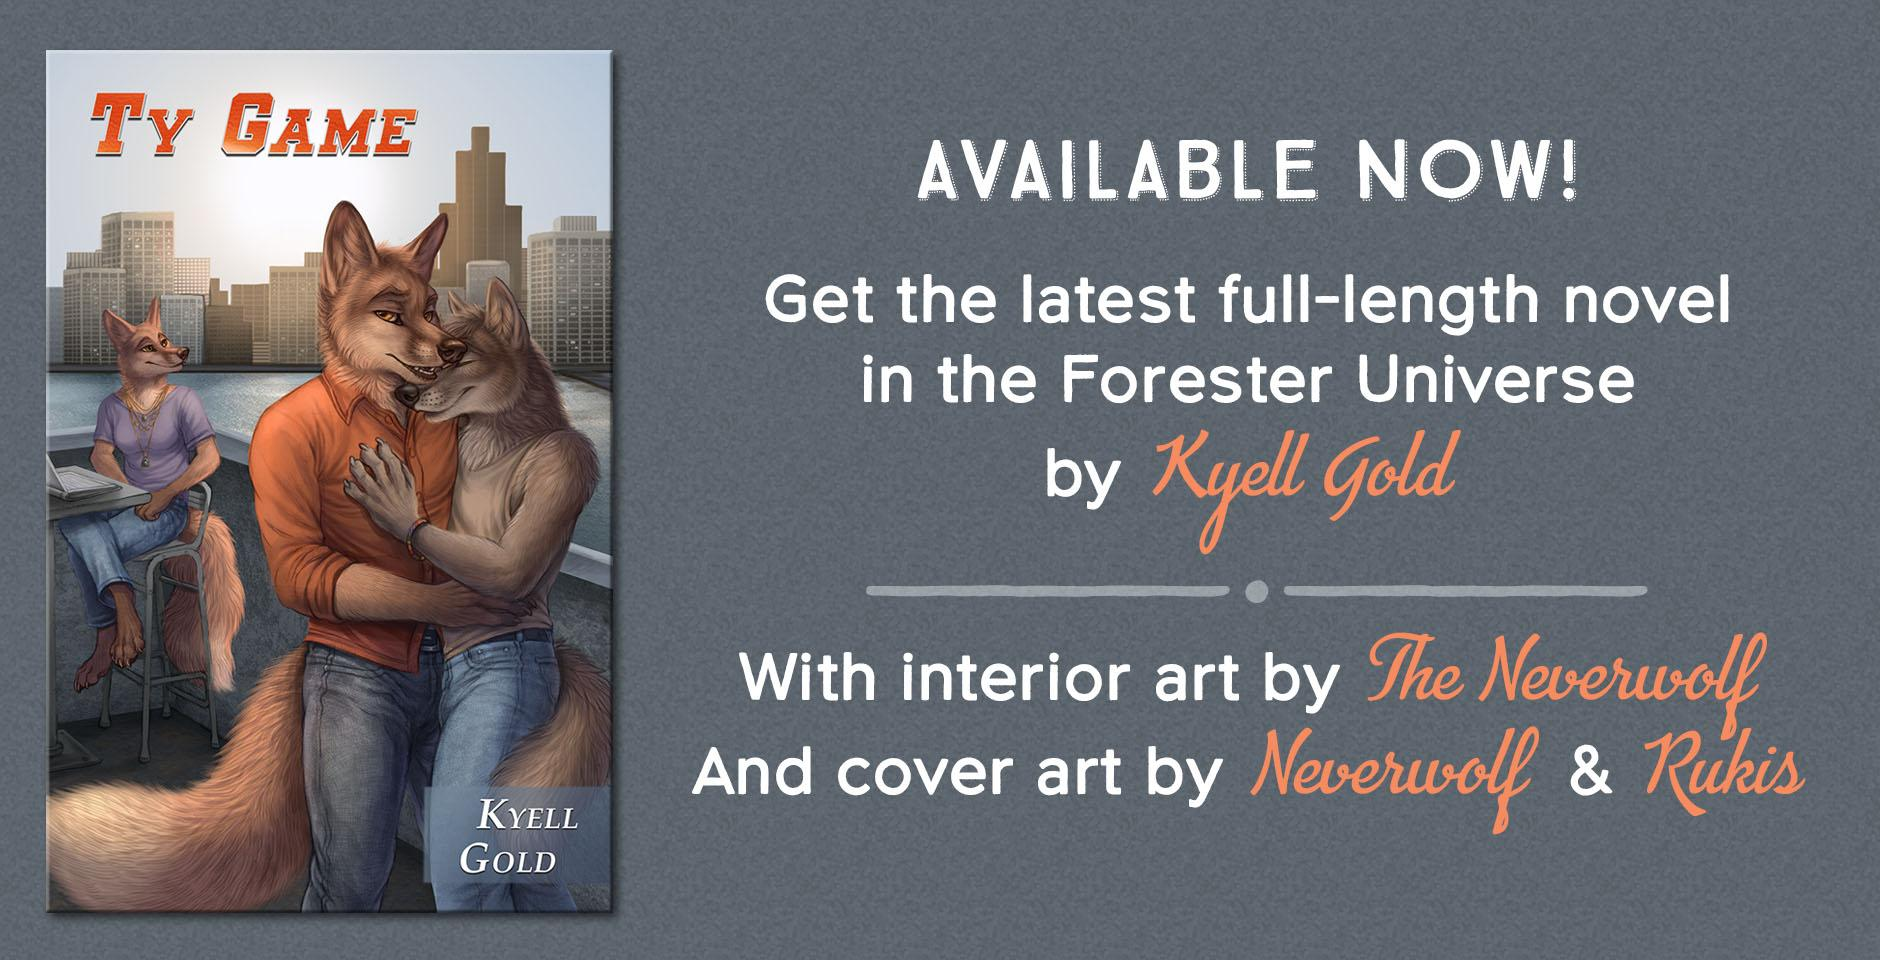 """Announcing """"Ty Game"""" by Kyell Gold, the newest release in the Forester Universe!"""